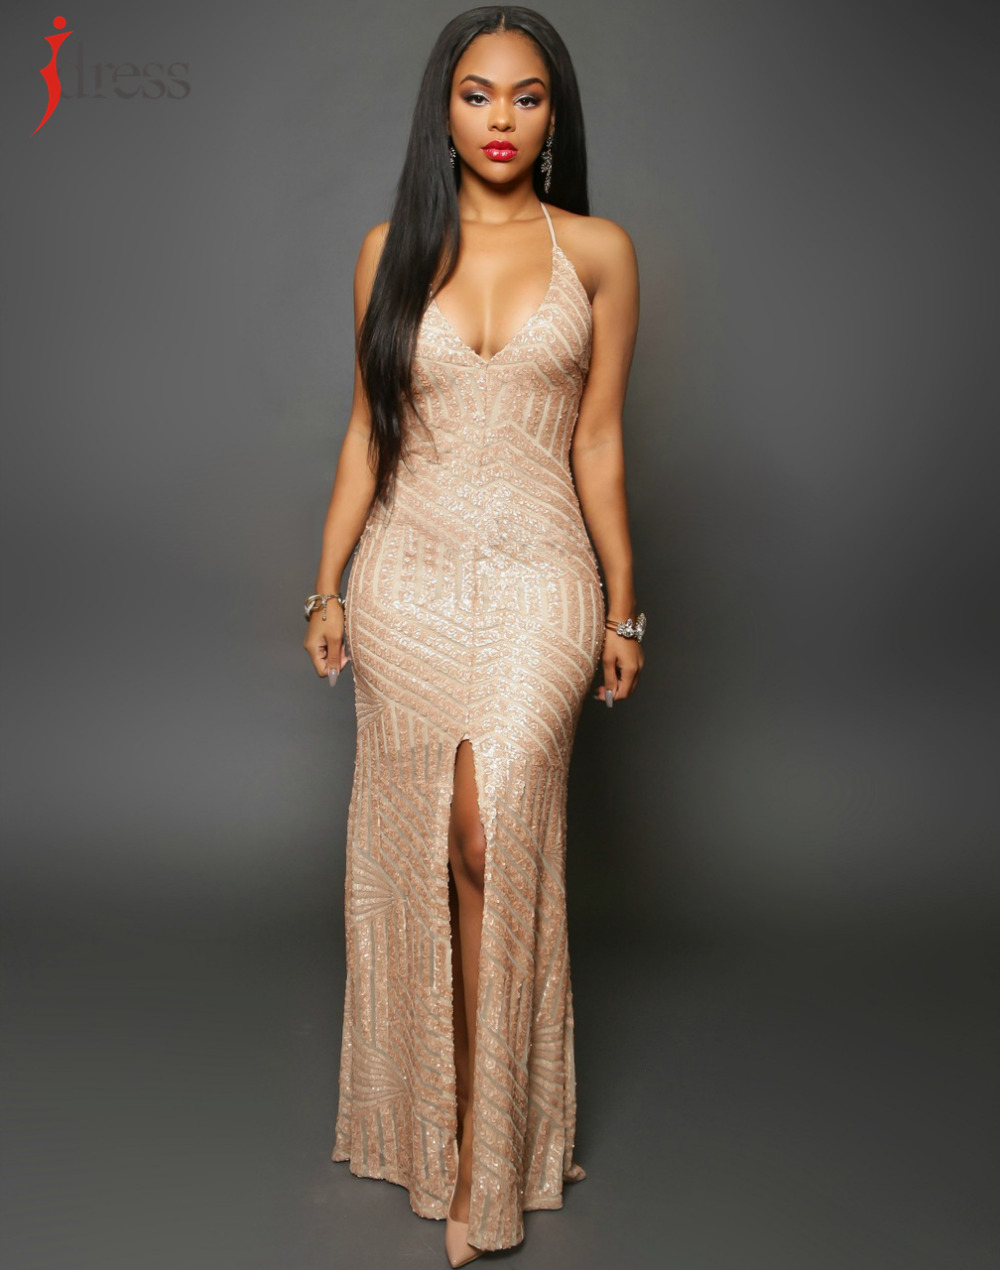 Party night dress pictures